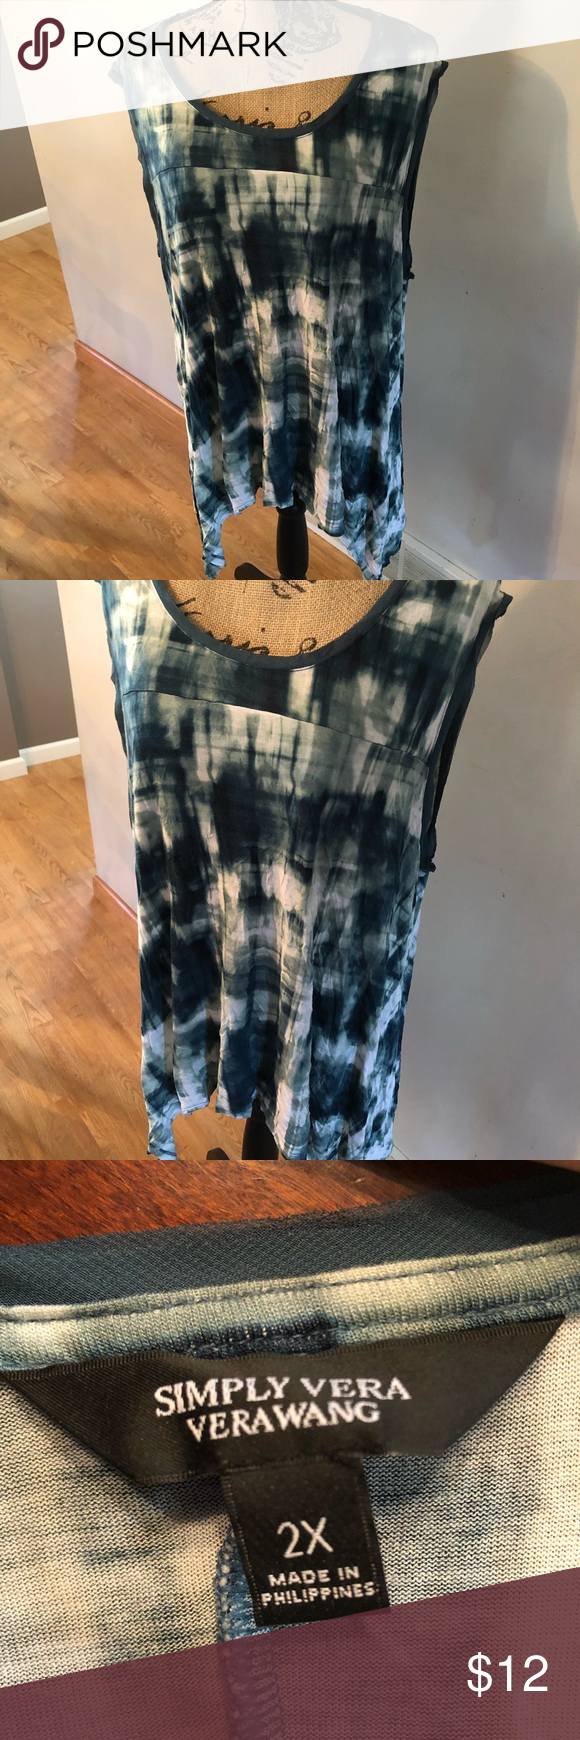 6146e0f2db083 EUC SIMPLY VERA tank top Size 2X! Gorgeous super soft with a beautiful shape.  Sides longer than middle creates a lovely silhouette 💕 Comes from a clean  and ...